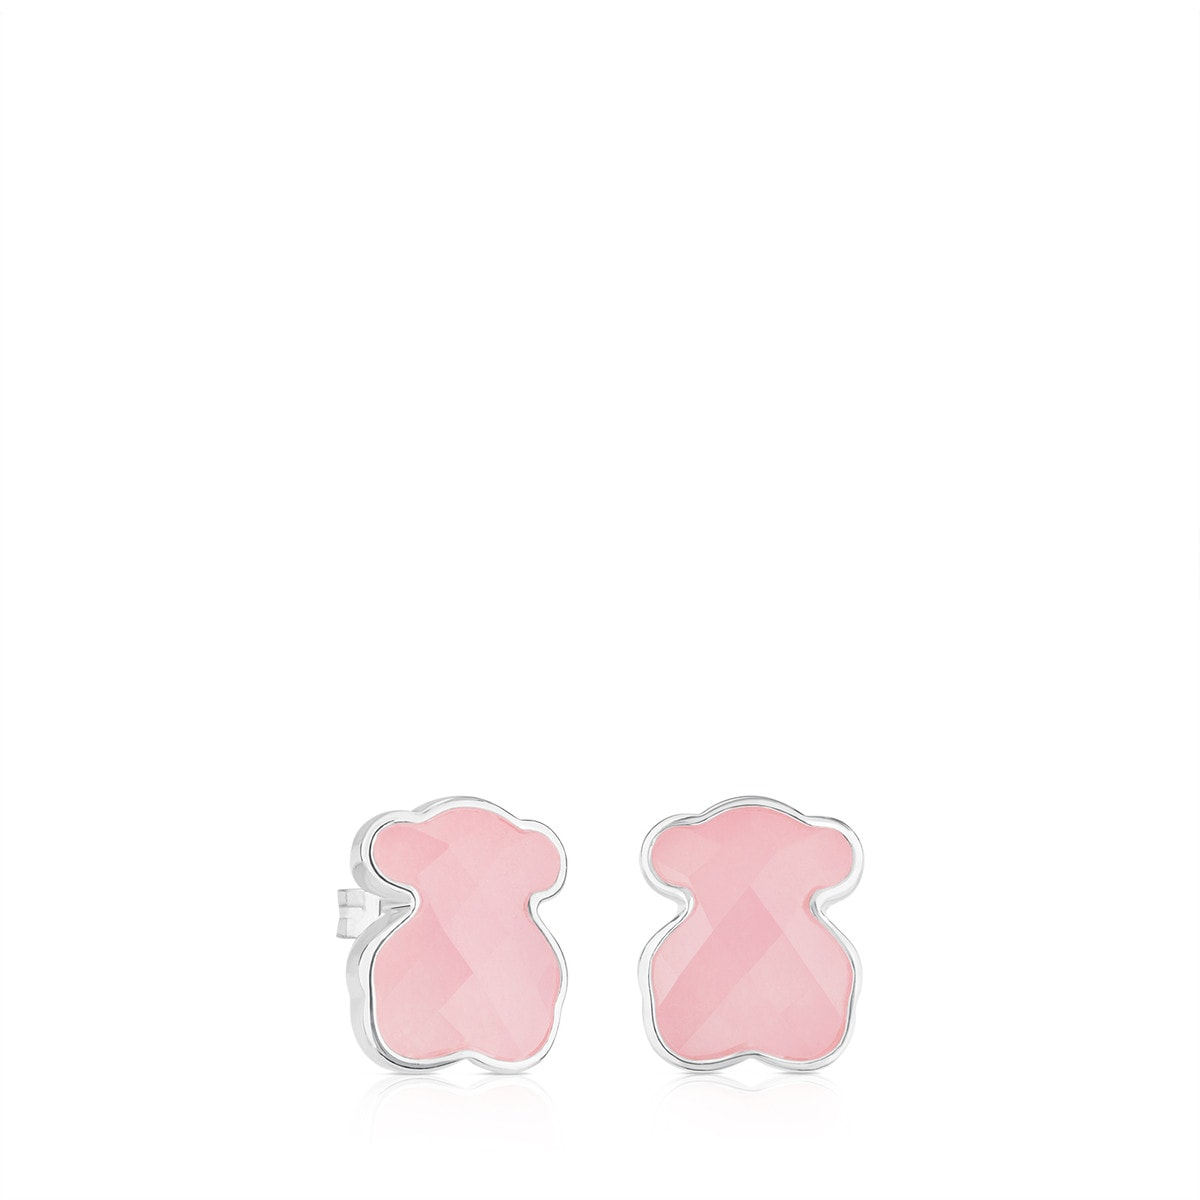 Silver TOUS Color Earrings with Quartz